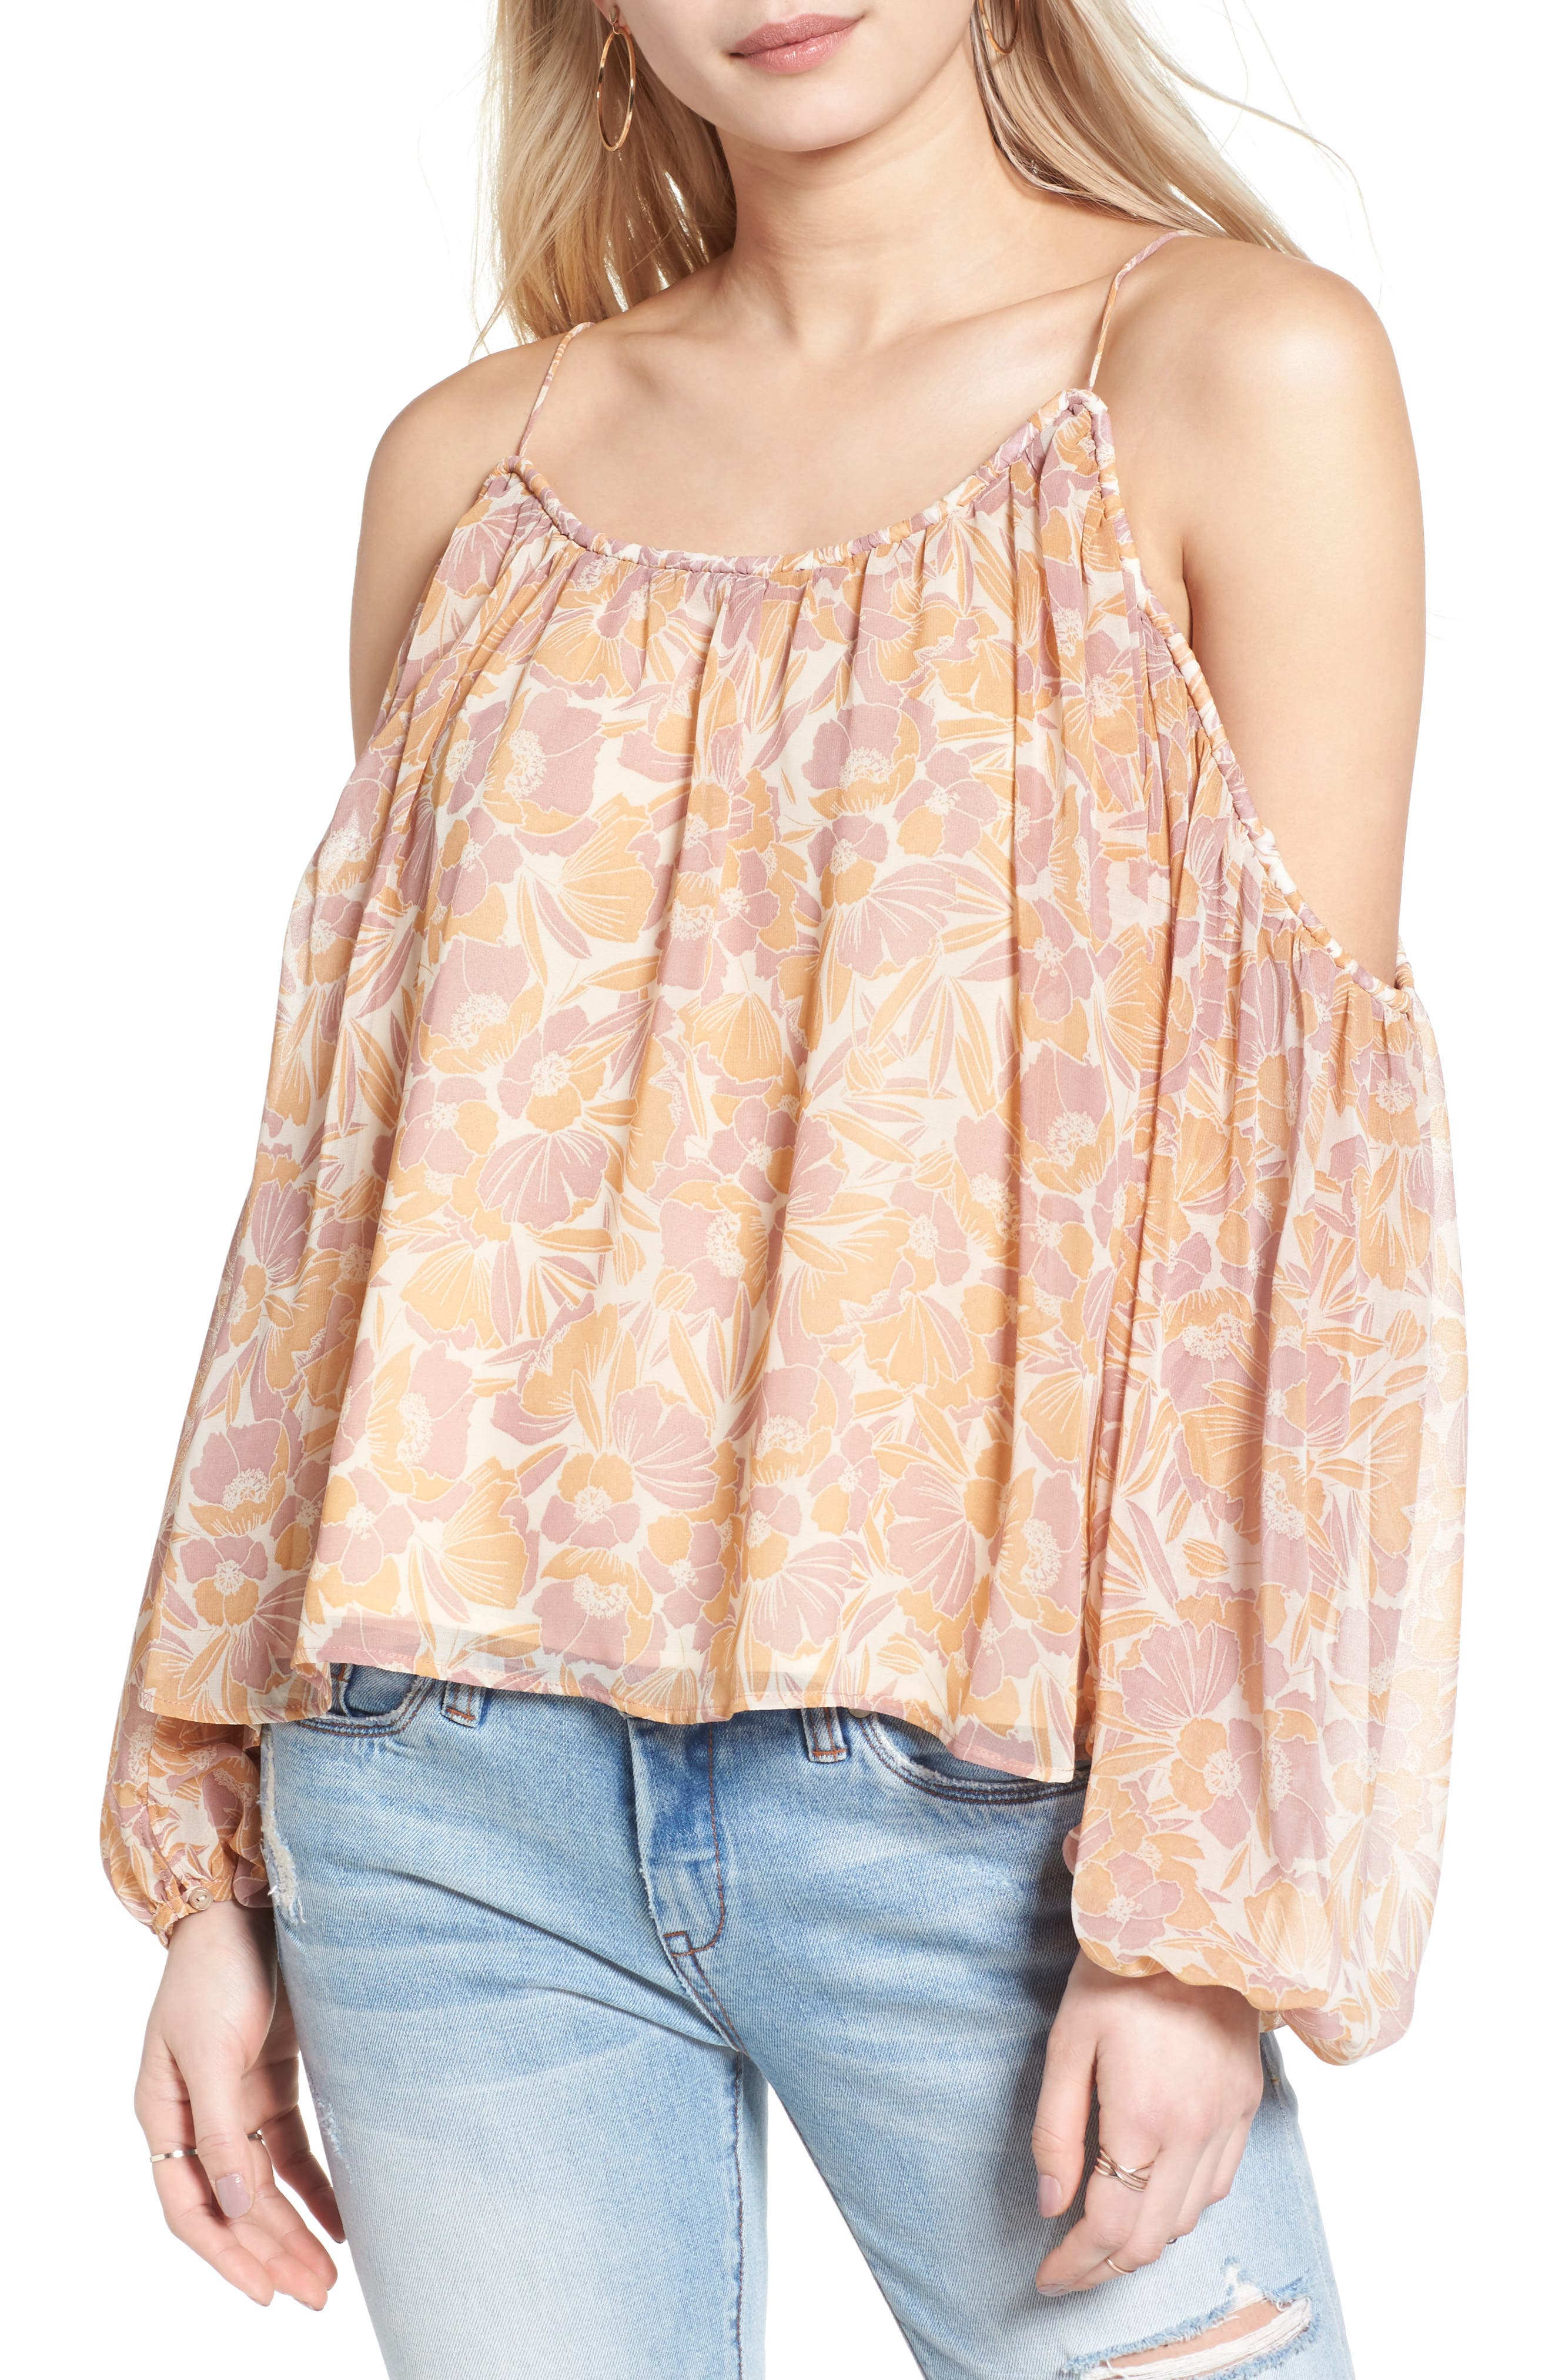 Main Image - ASTR the Label Josephine Cold Shoulder Top